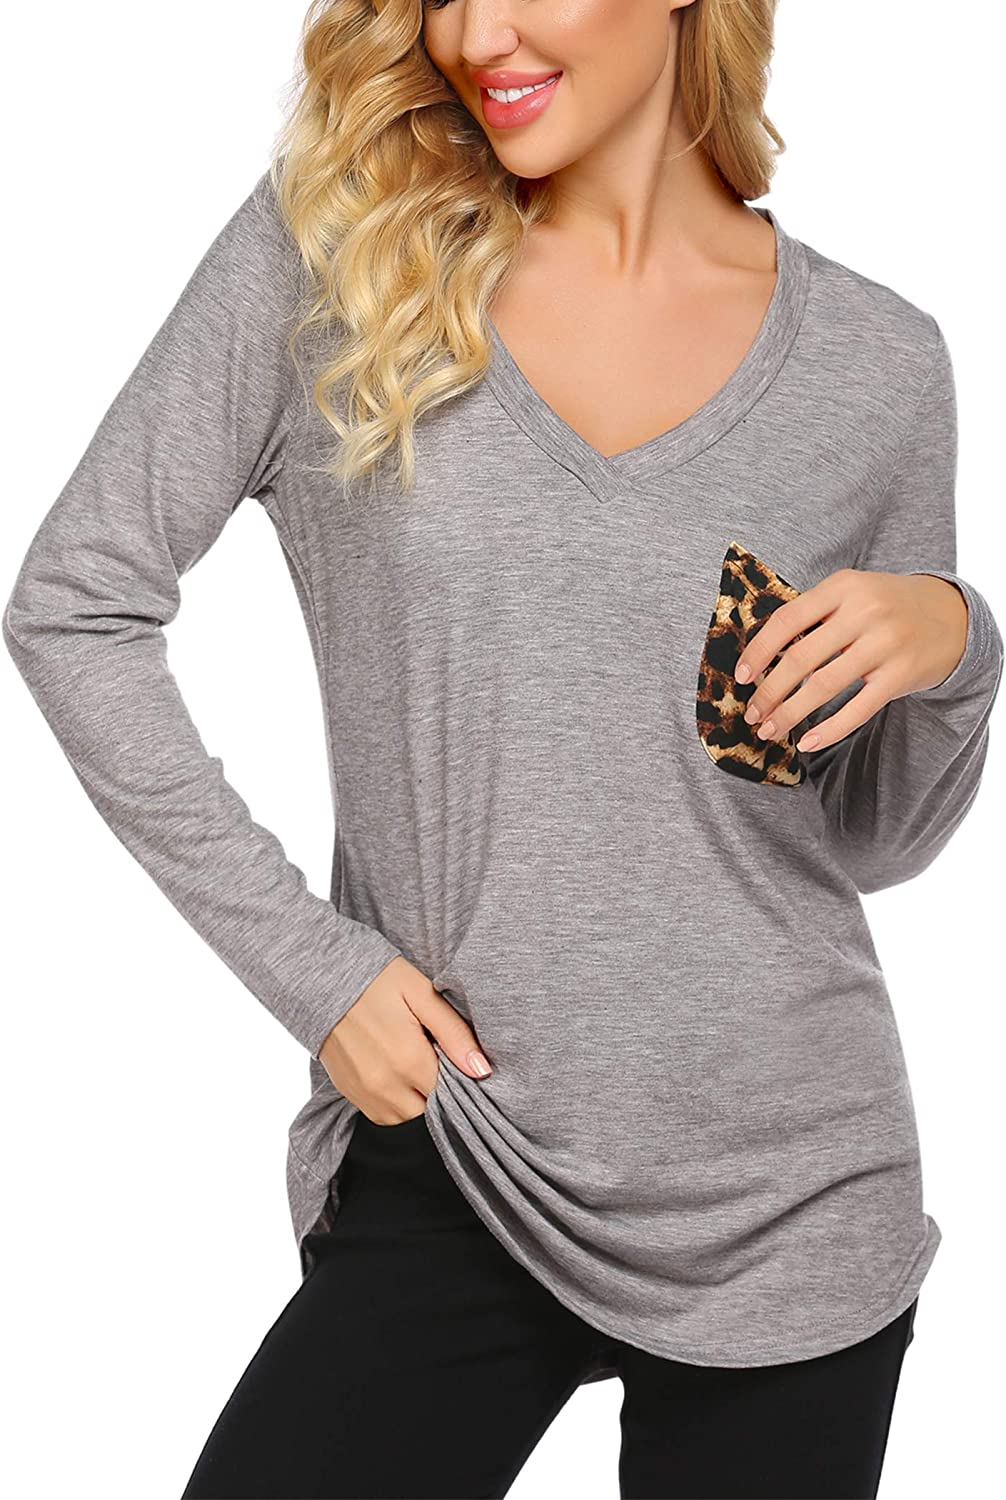 Misakia Womens T-Shirts Long Sleeve V-Neck Blouses Loose Casual Tops with Front Pocket